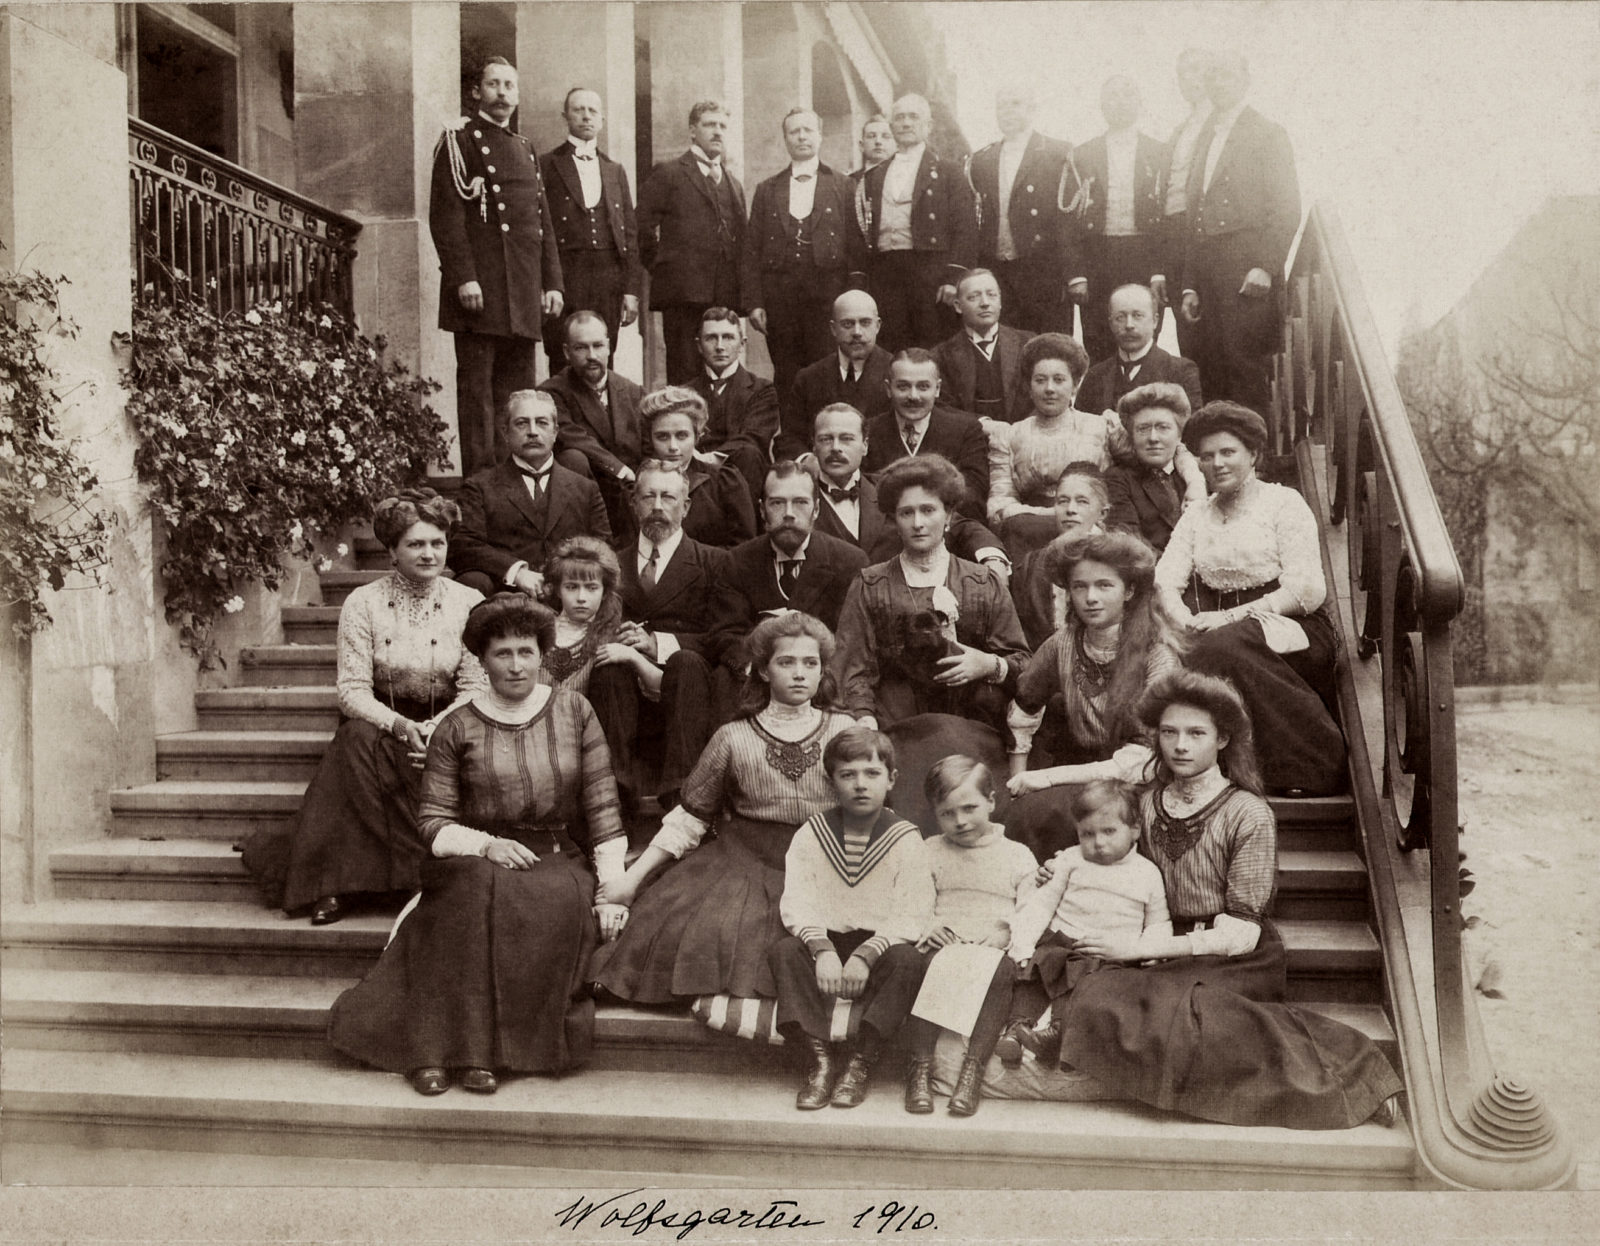 Family of Emperor Nicholas II visiting his Hessian relatives. On the steps of the Wolfsgarten palace. Darmstadt. The year 1910.